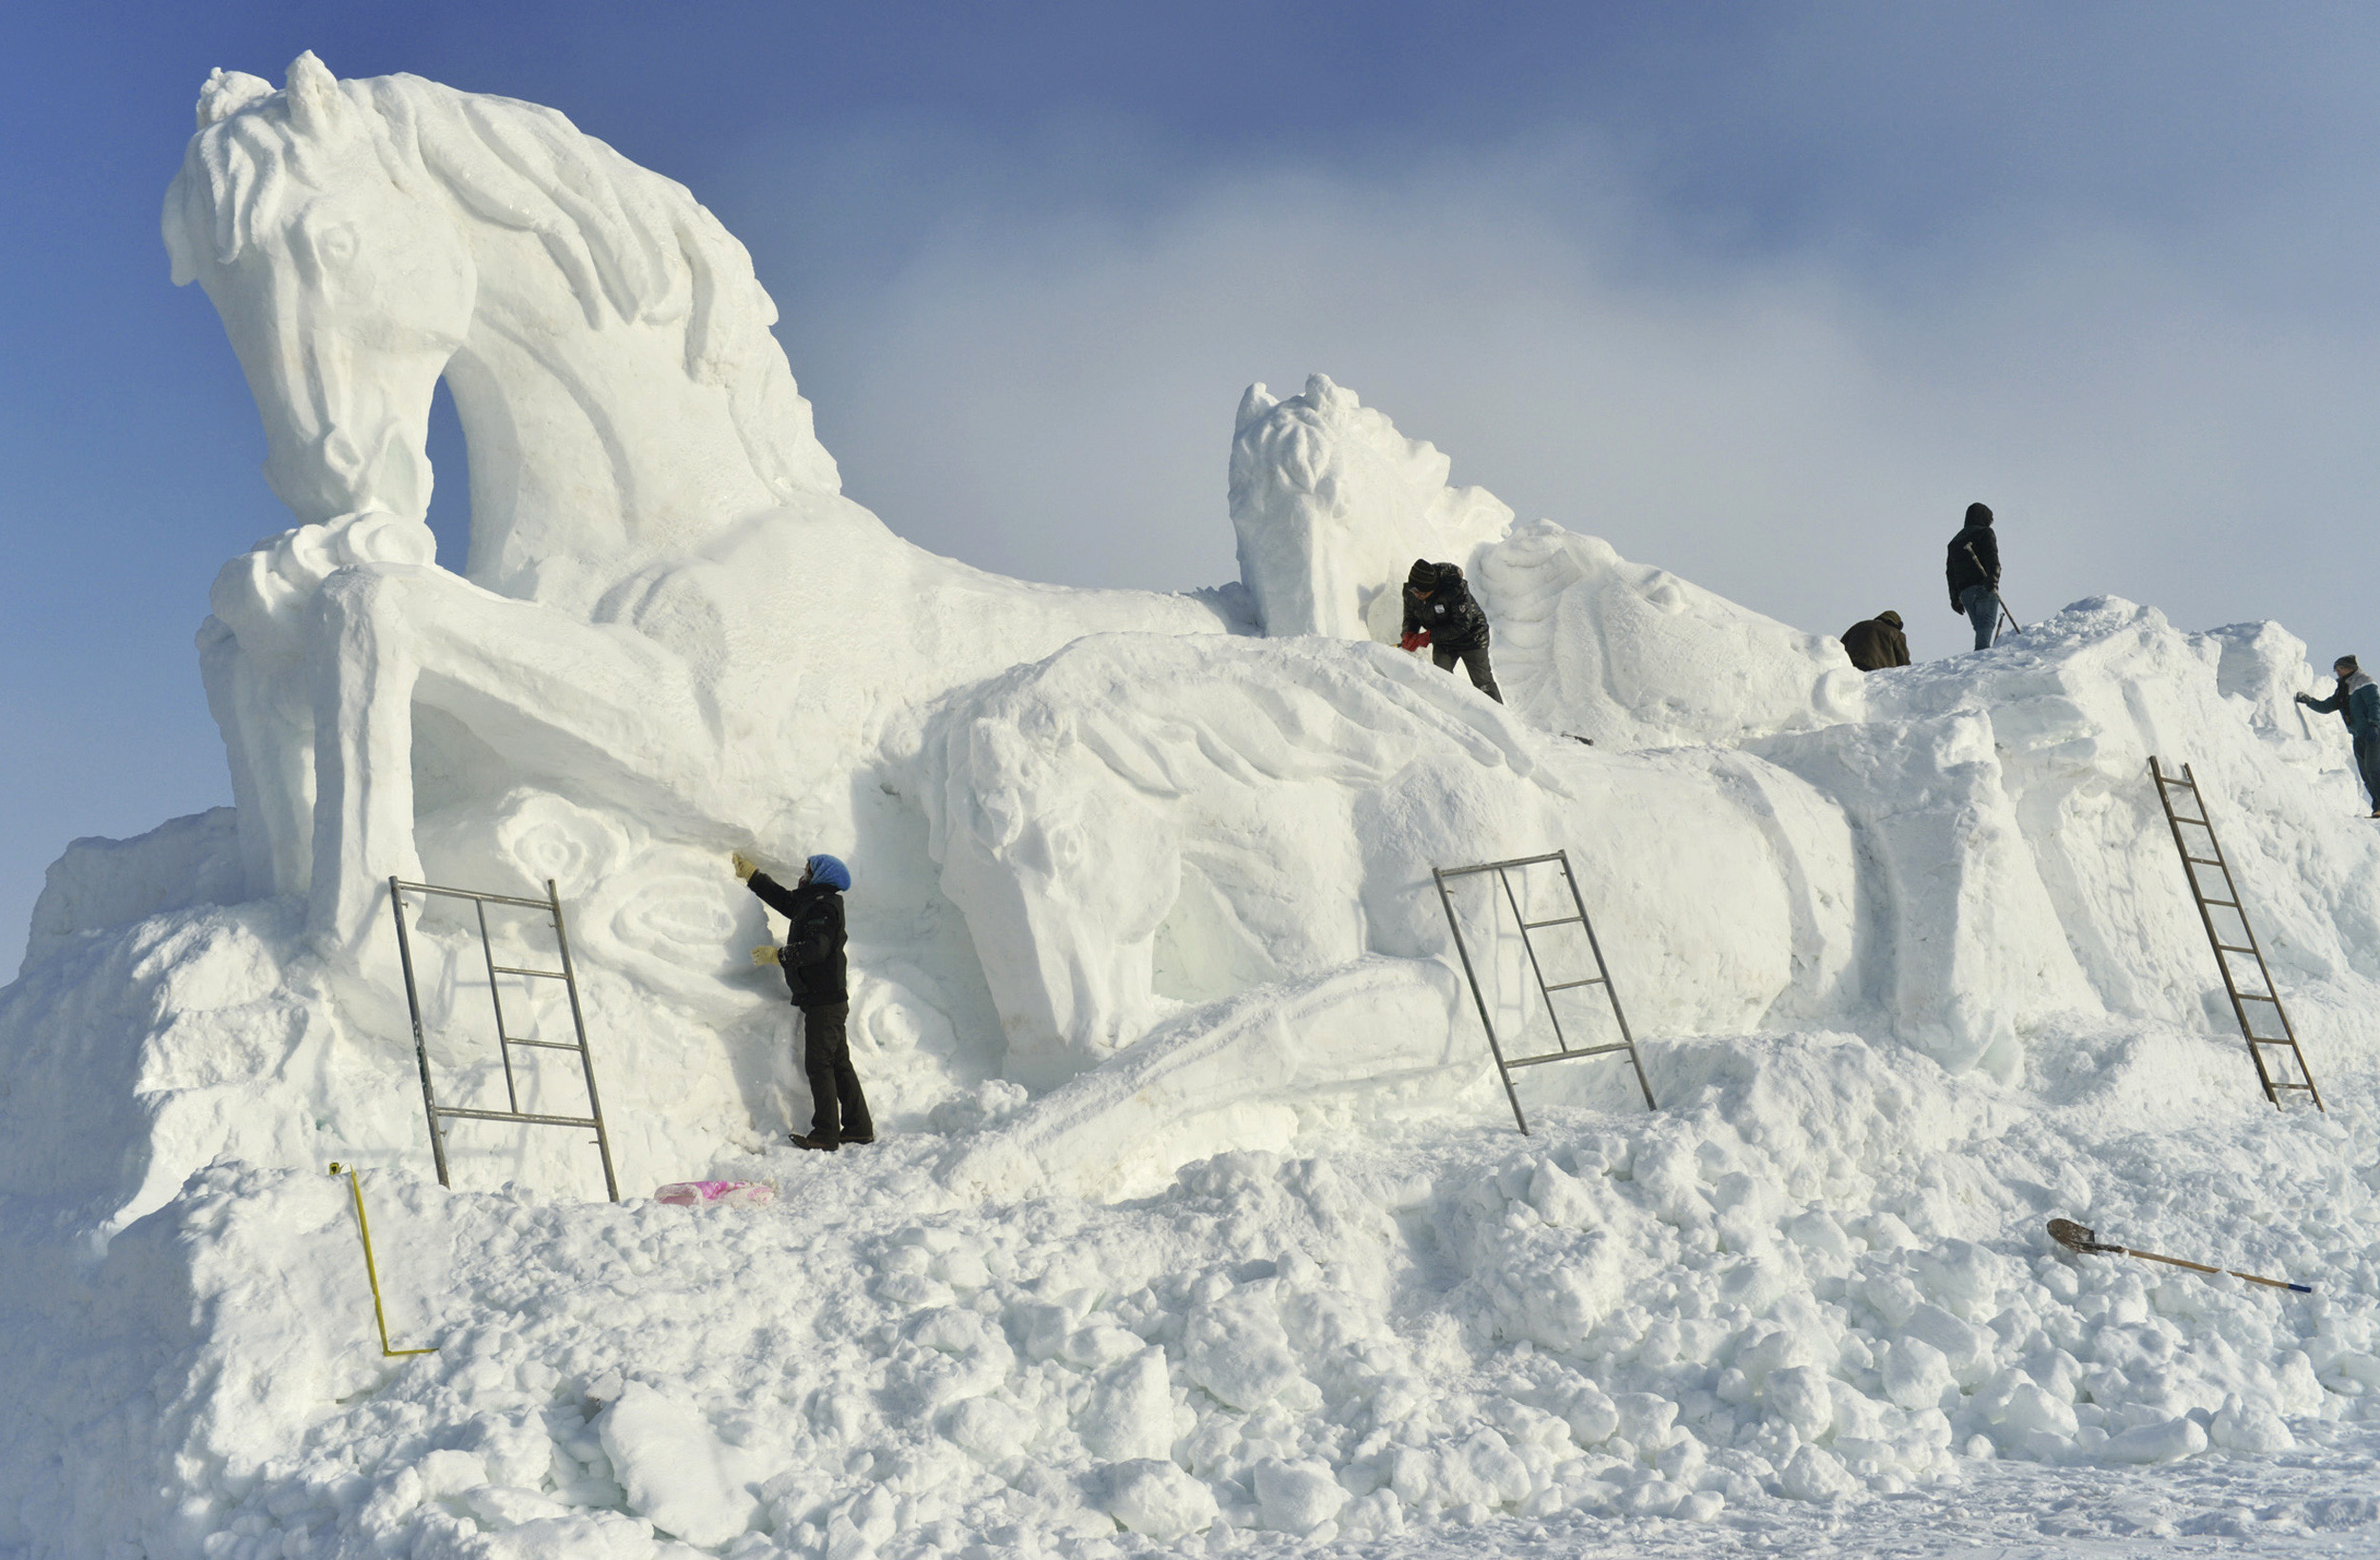 Workers shape a giant snow sculpture of horses ahead of an ice and snow festival in Barkol Kazakh Autonomous County